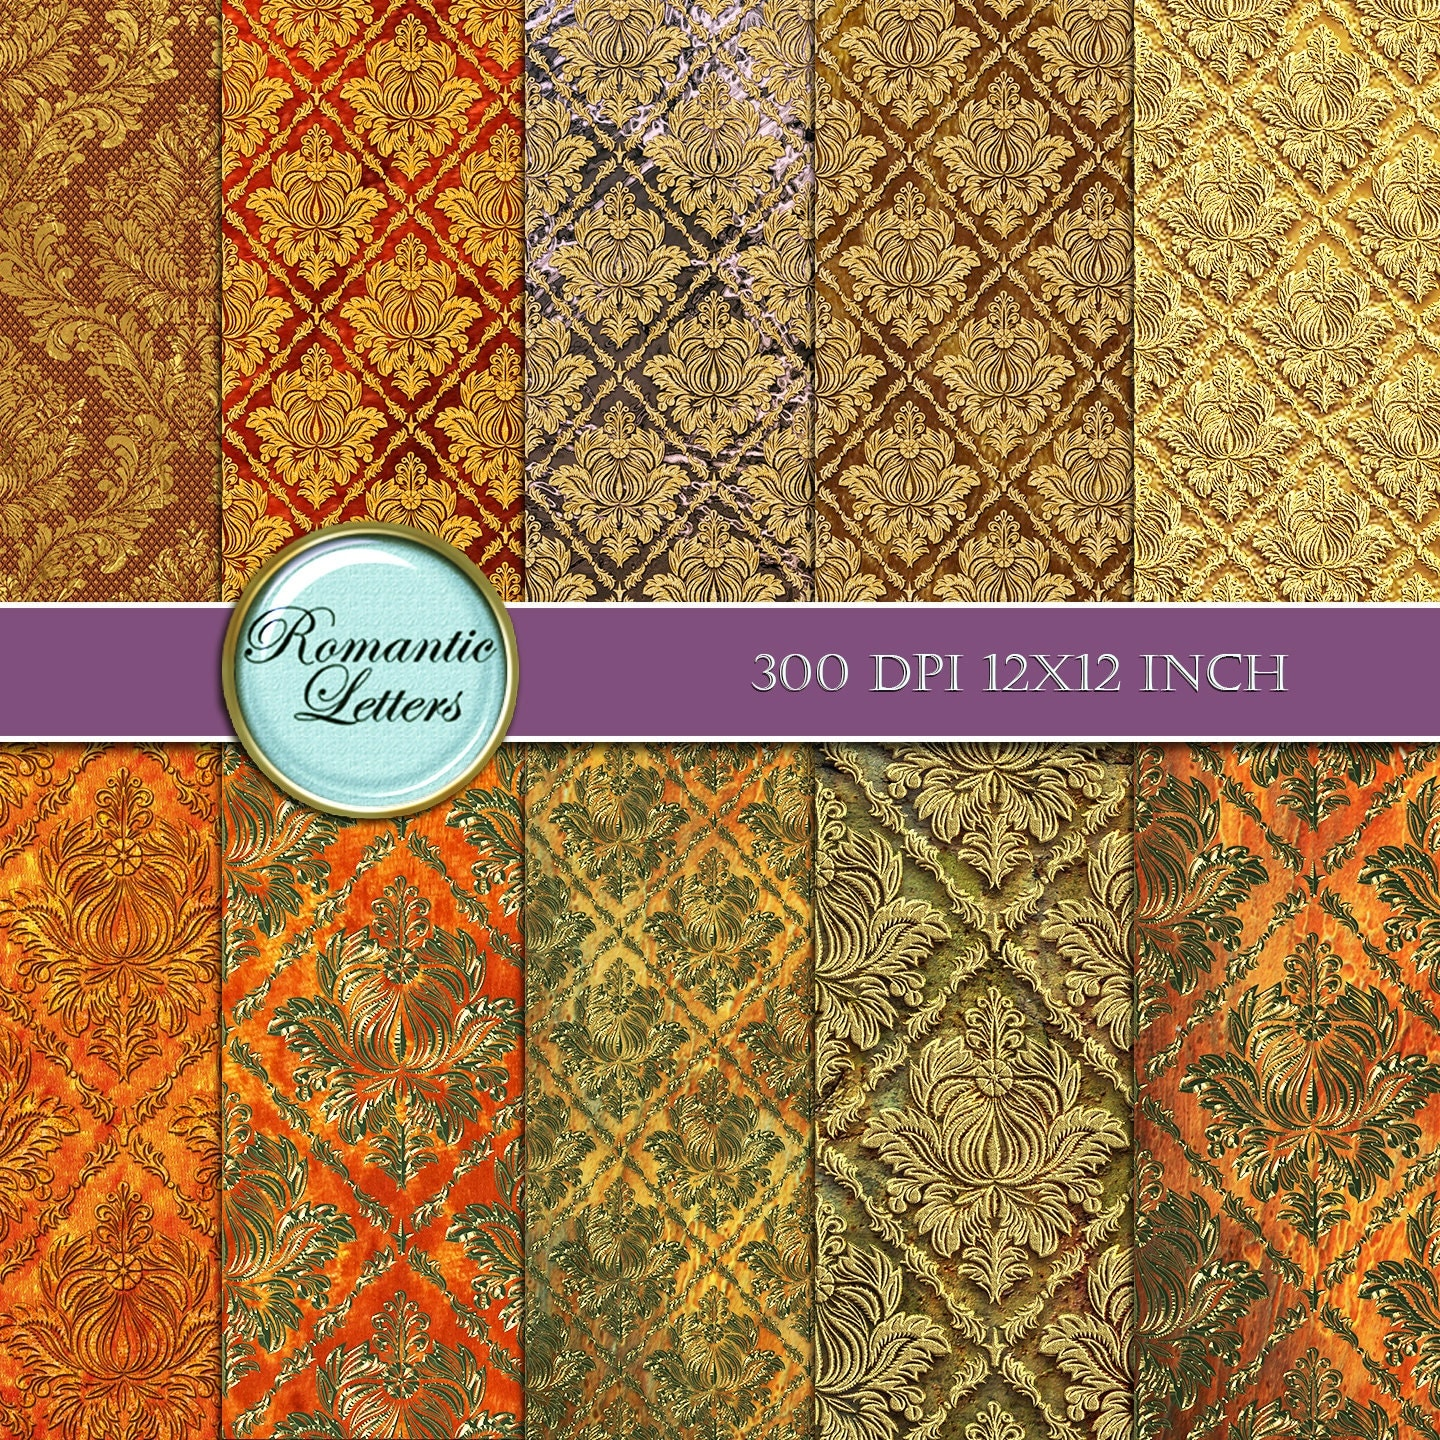 Scrapbook paper as wallpaper - Sold By Romanticletters